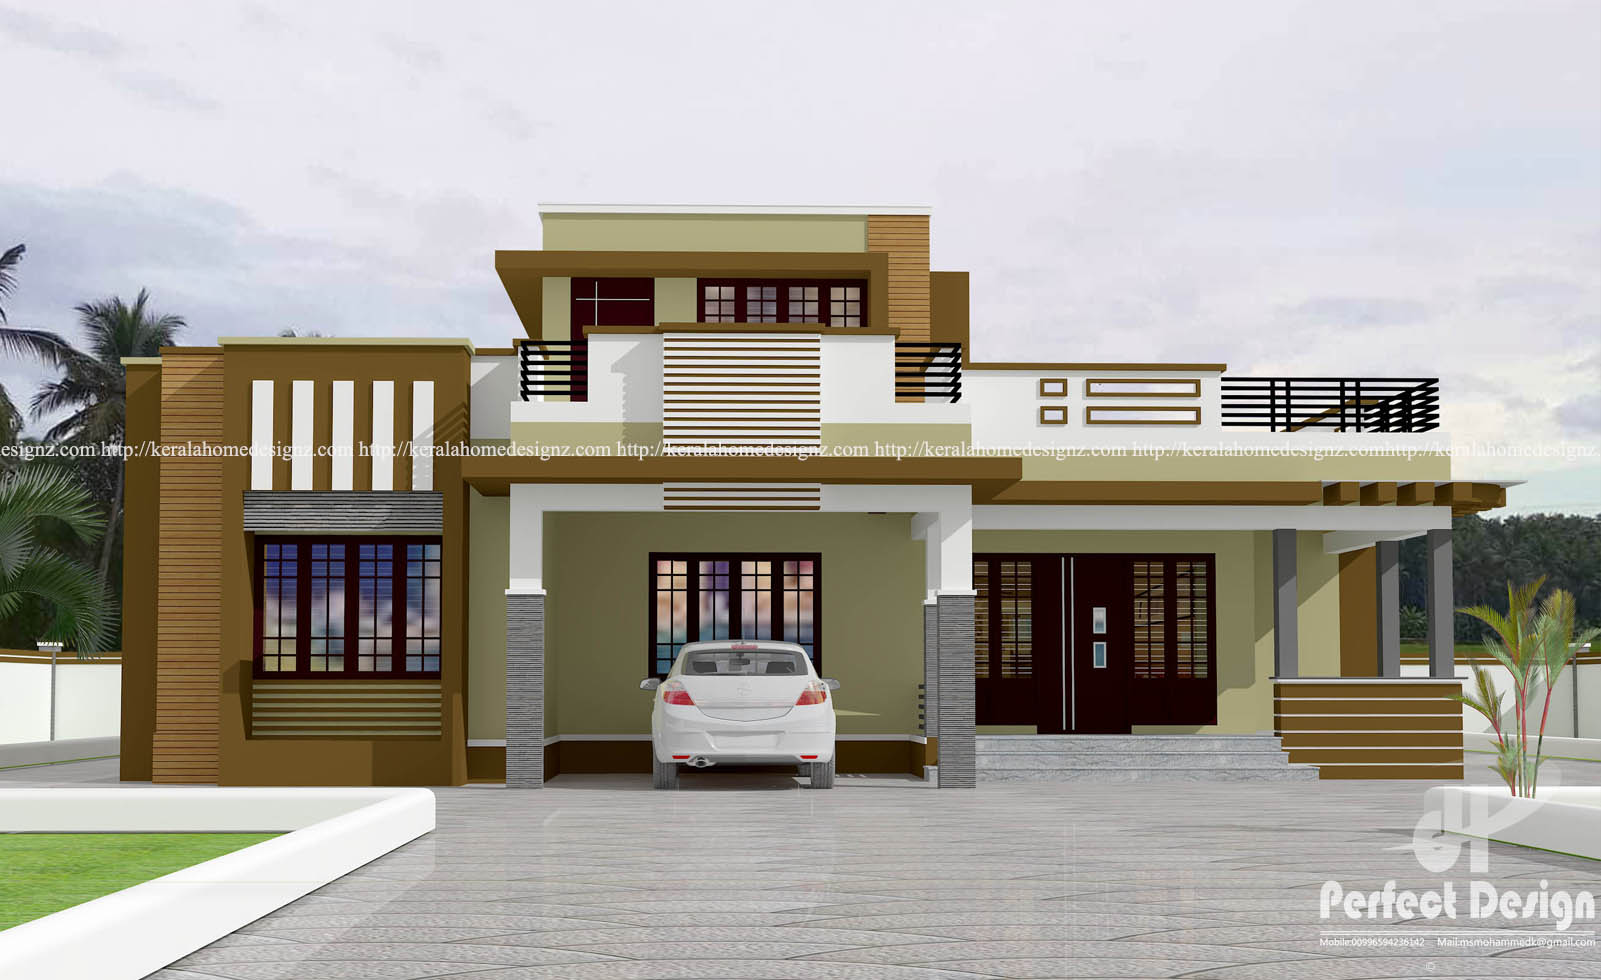 3 Bedroom Contemporary Home Design | Pinoy ePlans on abstract home plans, classical home plans, retro home plans, industrial home plans, comfortable home plans, alternative home plans, classic home plans, fun home plans, stylish home plans, office home plans, contemporary country home plans, urban home plans, modernistic home plans, antique home plans, spacious home plans, arts and crafts home plans, minimalist home plans, rock home plans, mid-century modern home plans, functional home plans,